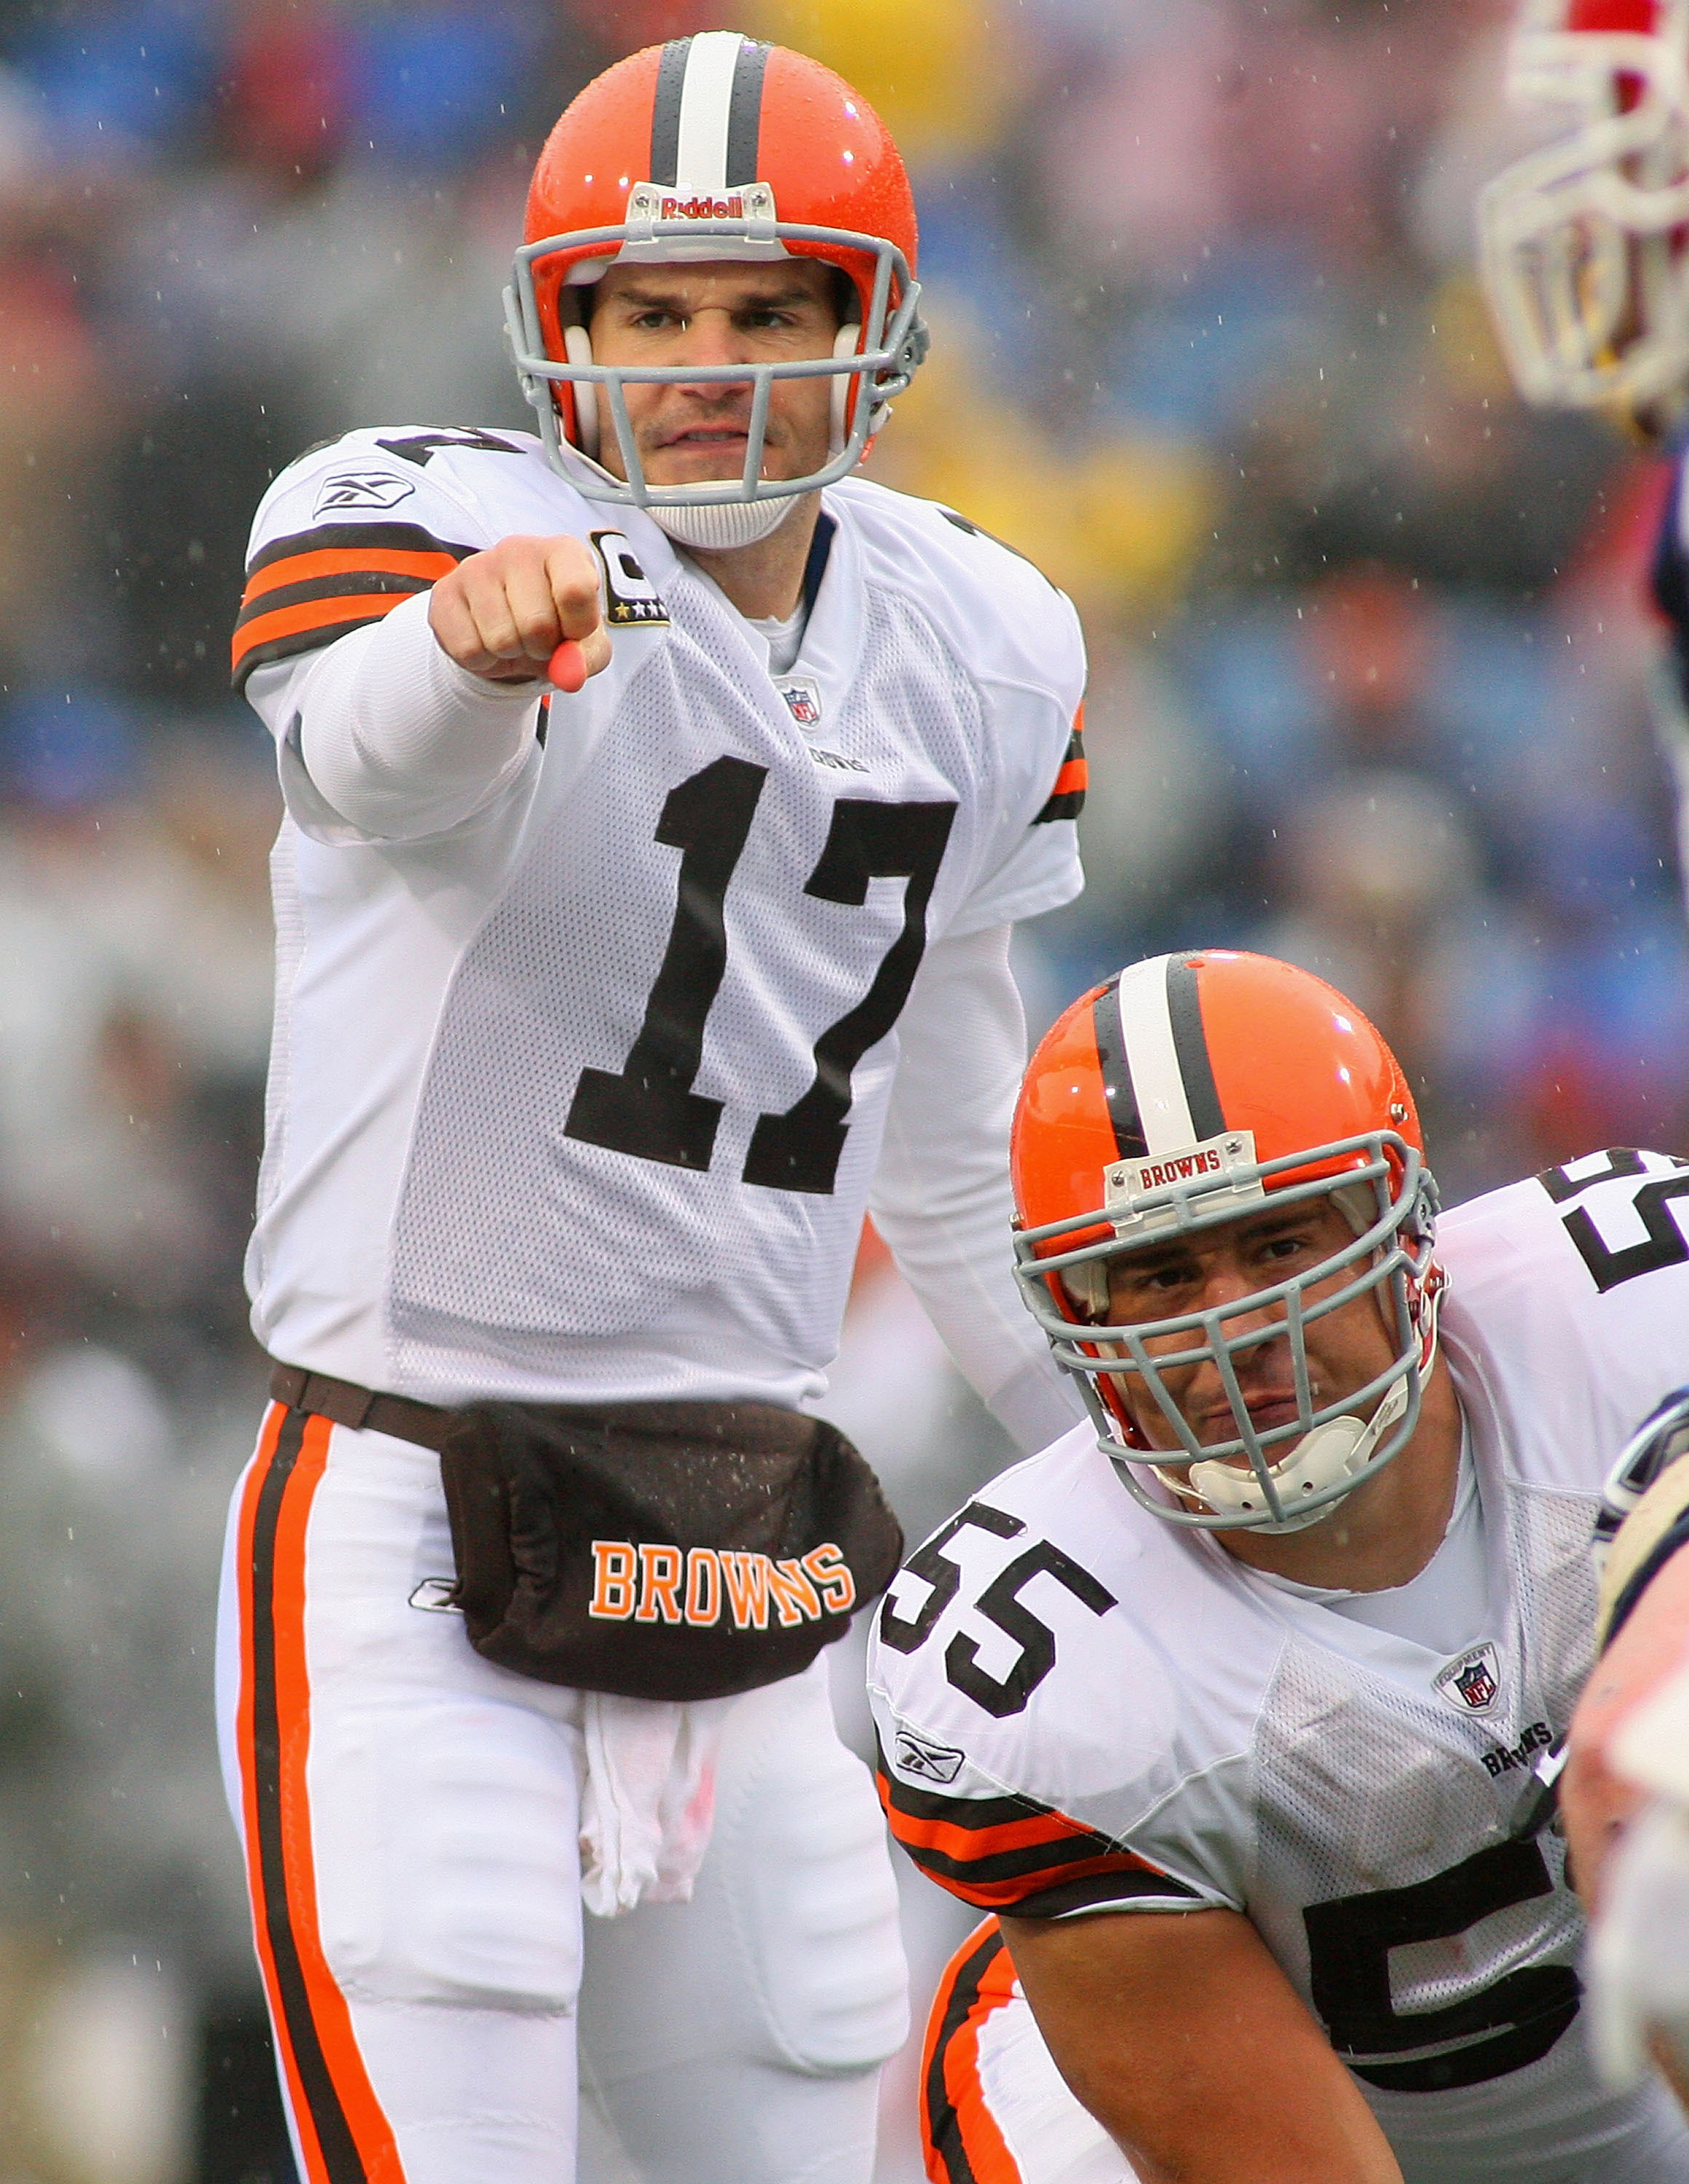 ORCHARD PARK, NY - DECEMBER 12:  Jake Delhomme #17 and Alex Mack #55 of the Cleveland Browns call signals against the Buffalo Bills  at Ralph Wilson Stadium on December 12, 2010 in Orchard Park, New York.  (Photo by Rick Stewart/Getty Images)